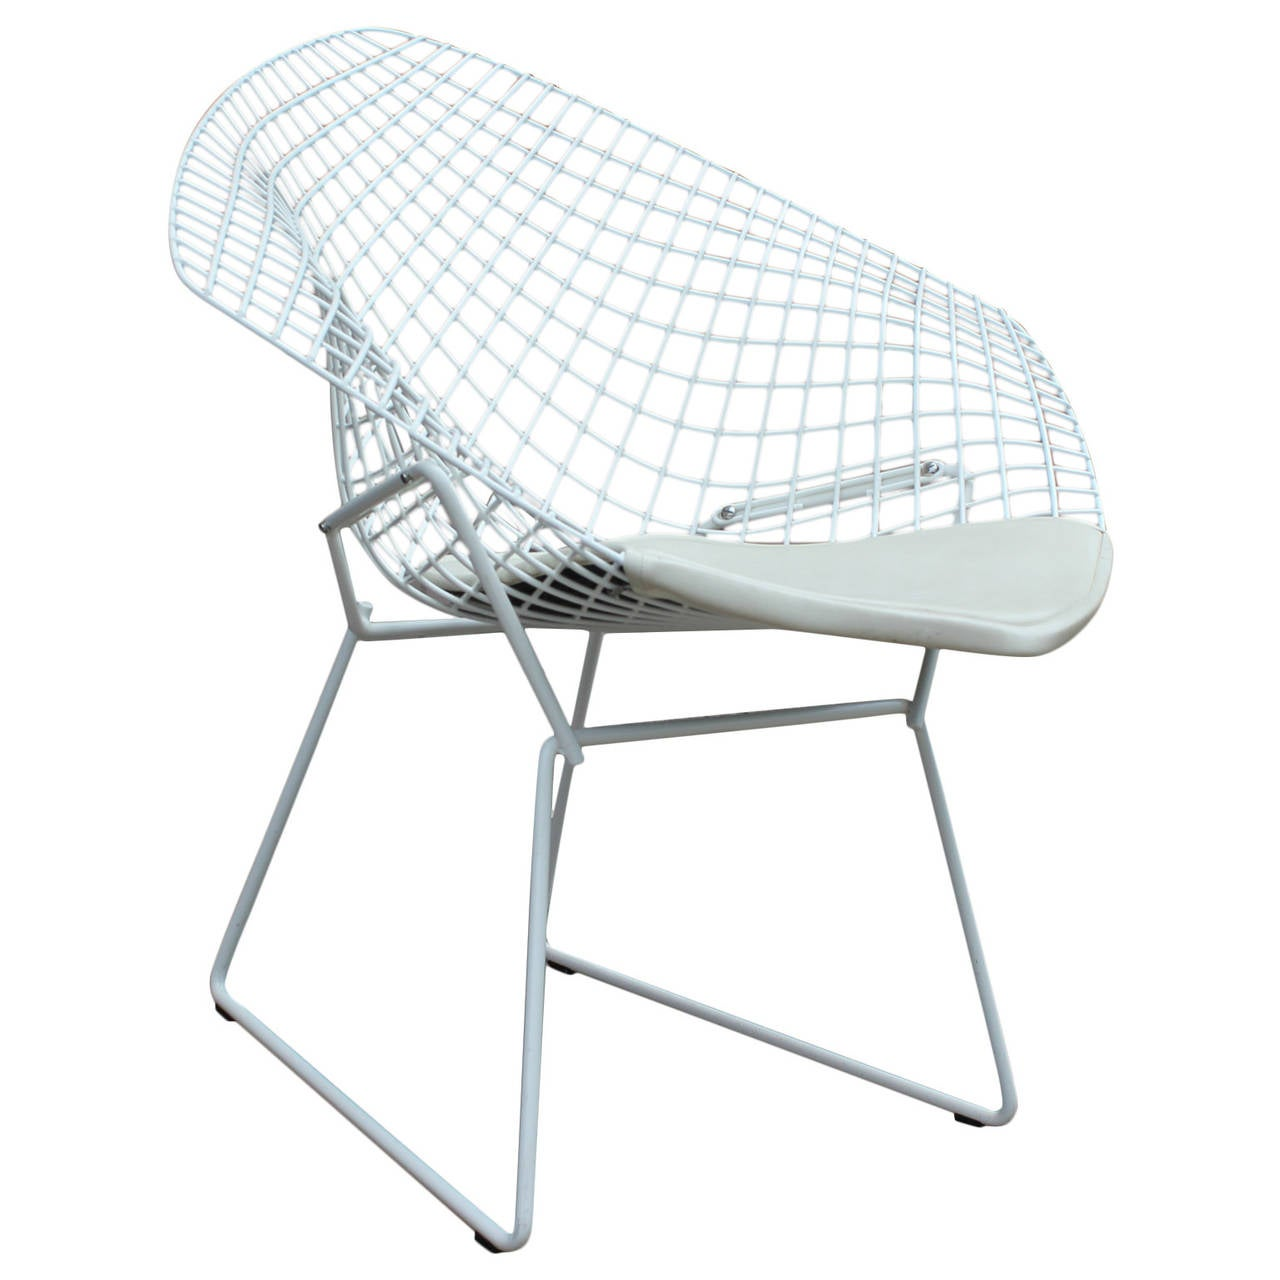 Harry Bertoia Chair White Diamond Chair By Harry Bertoia For Knoll At 1stdibs